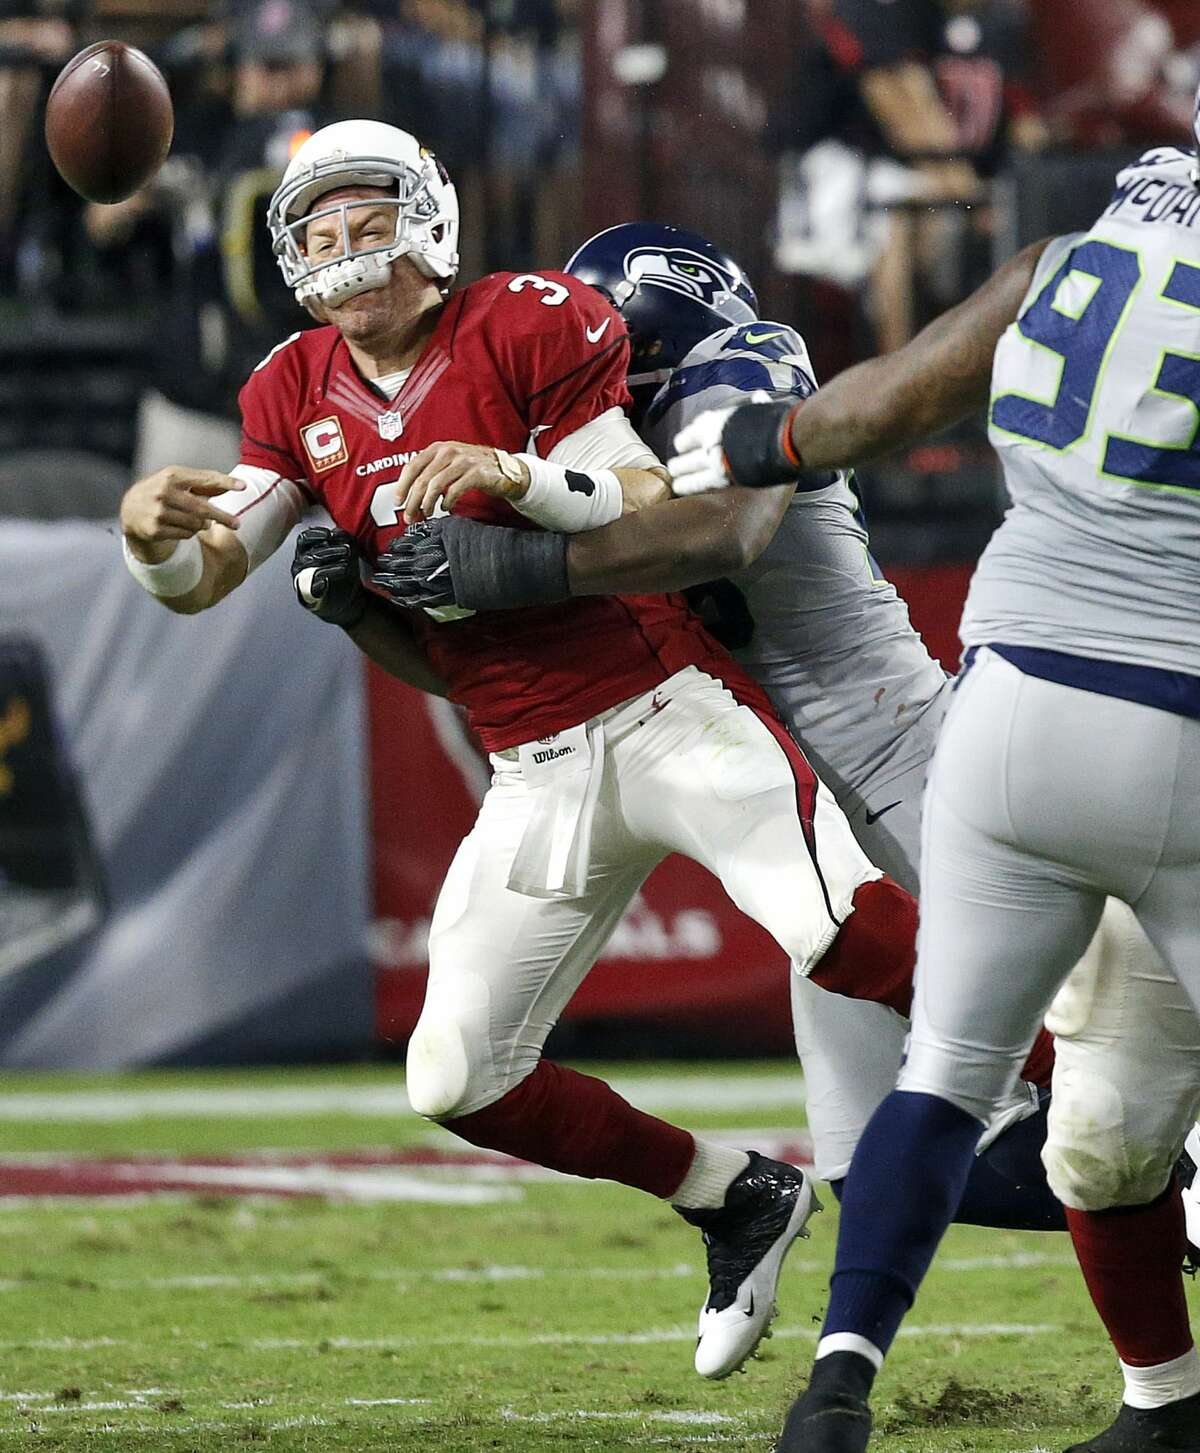 Arizona Cardinals quarterback Carson Palmer (3) his hit as he throws by Seattle Seahawks defensive tackle Ahtyba Rubin during the second half of a football game, Sunday, Oct. 23, 2016, in Glendale, Ariz. (AP Photo/Ross D. Franklin)